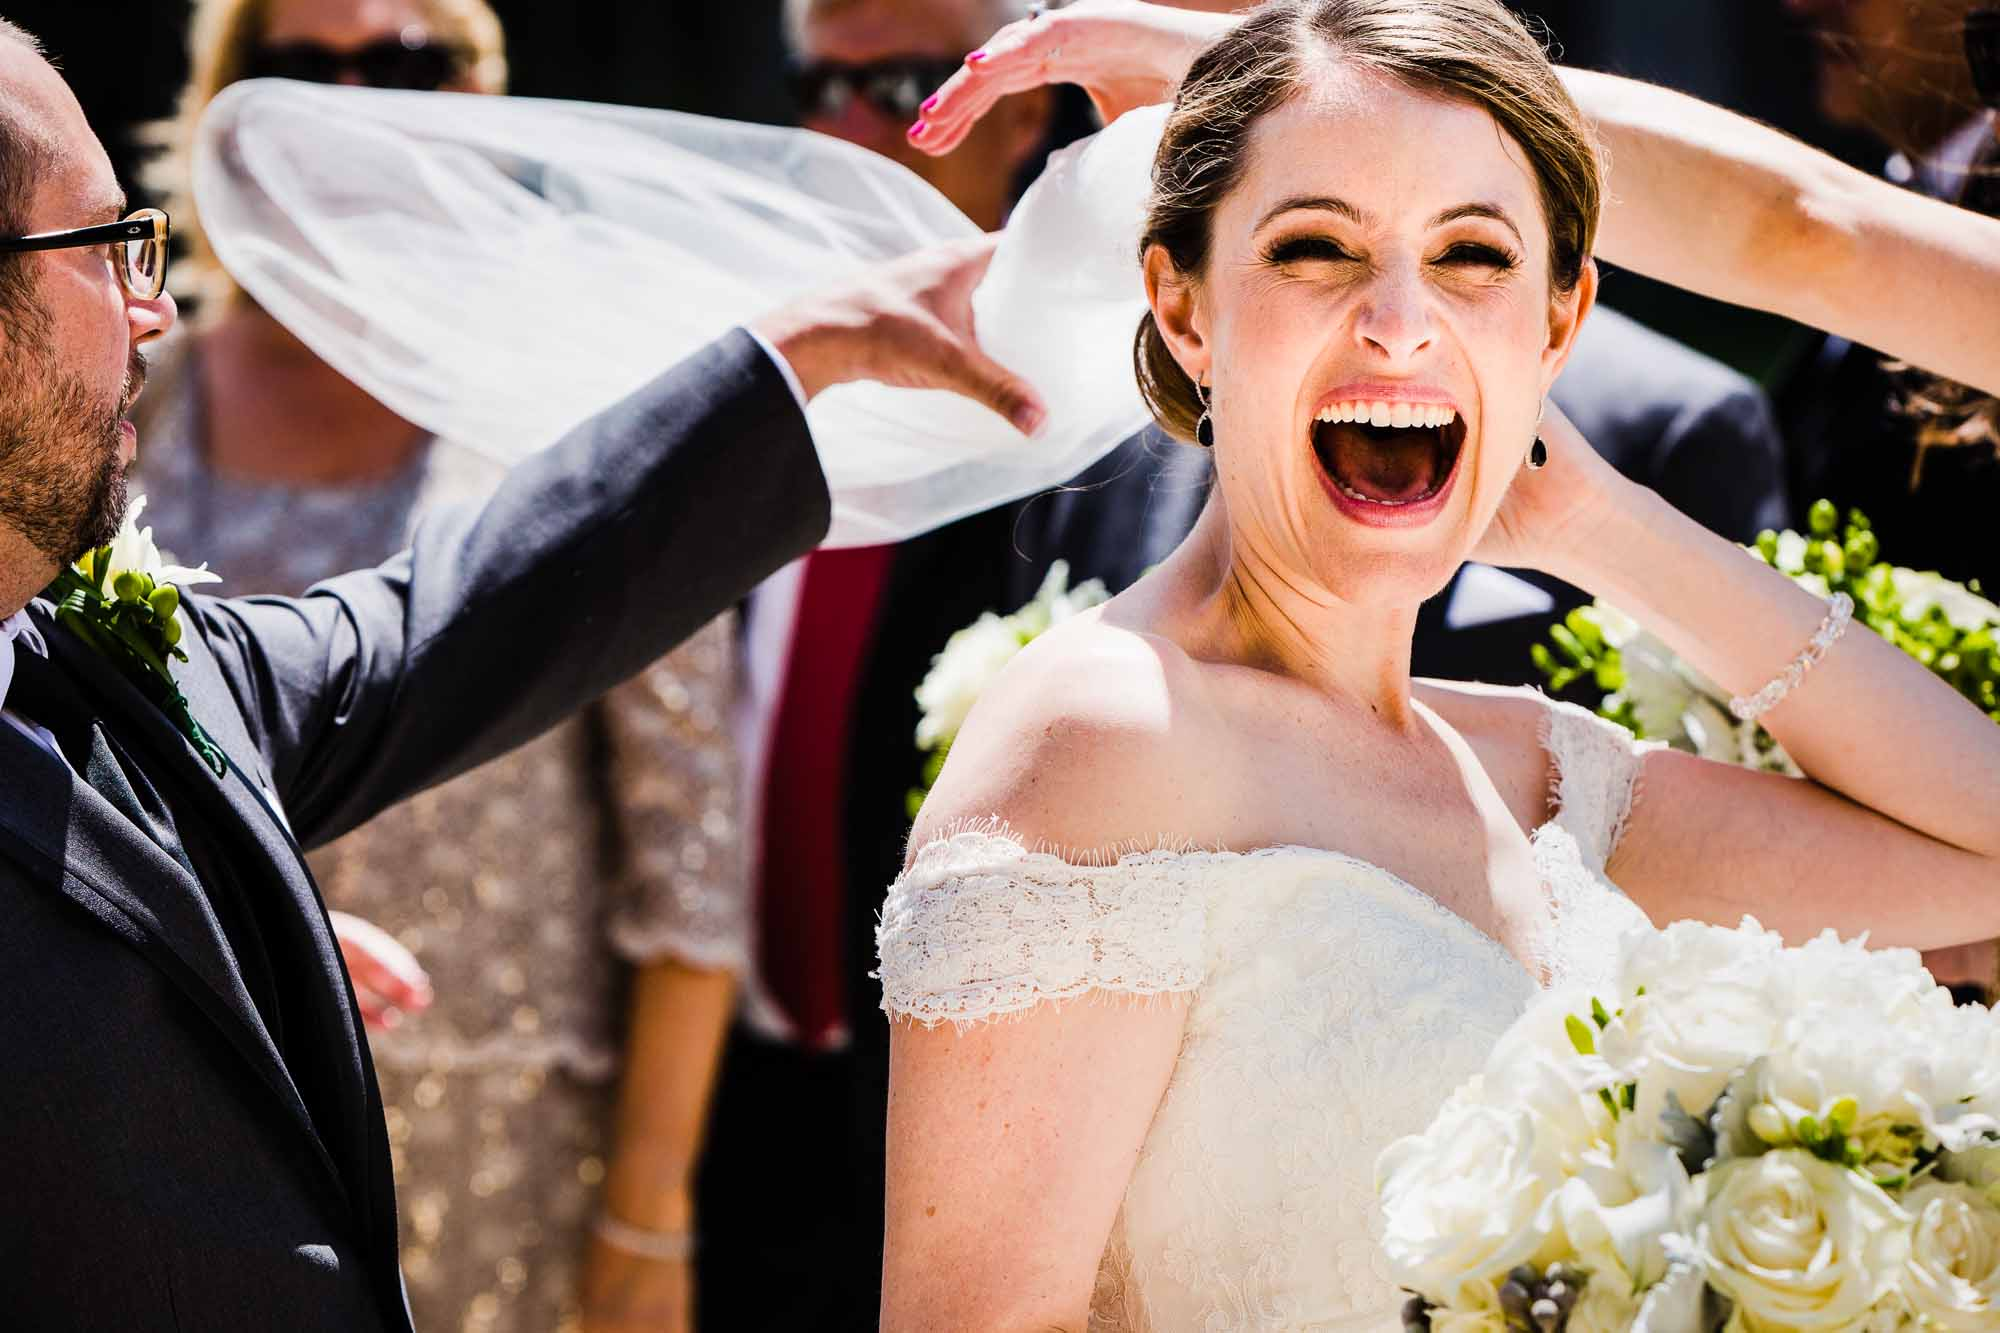 bride laughing while veil flies up in the air due to windy day